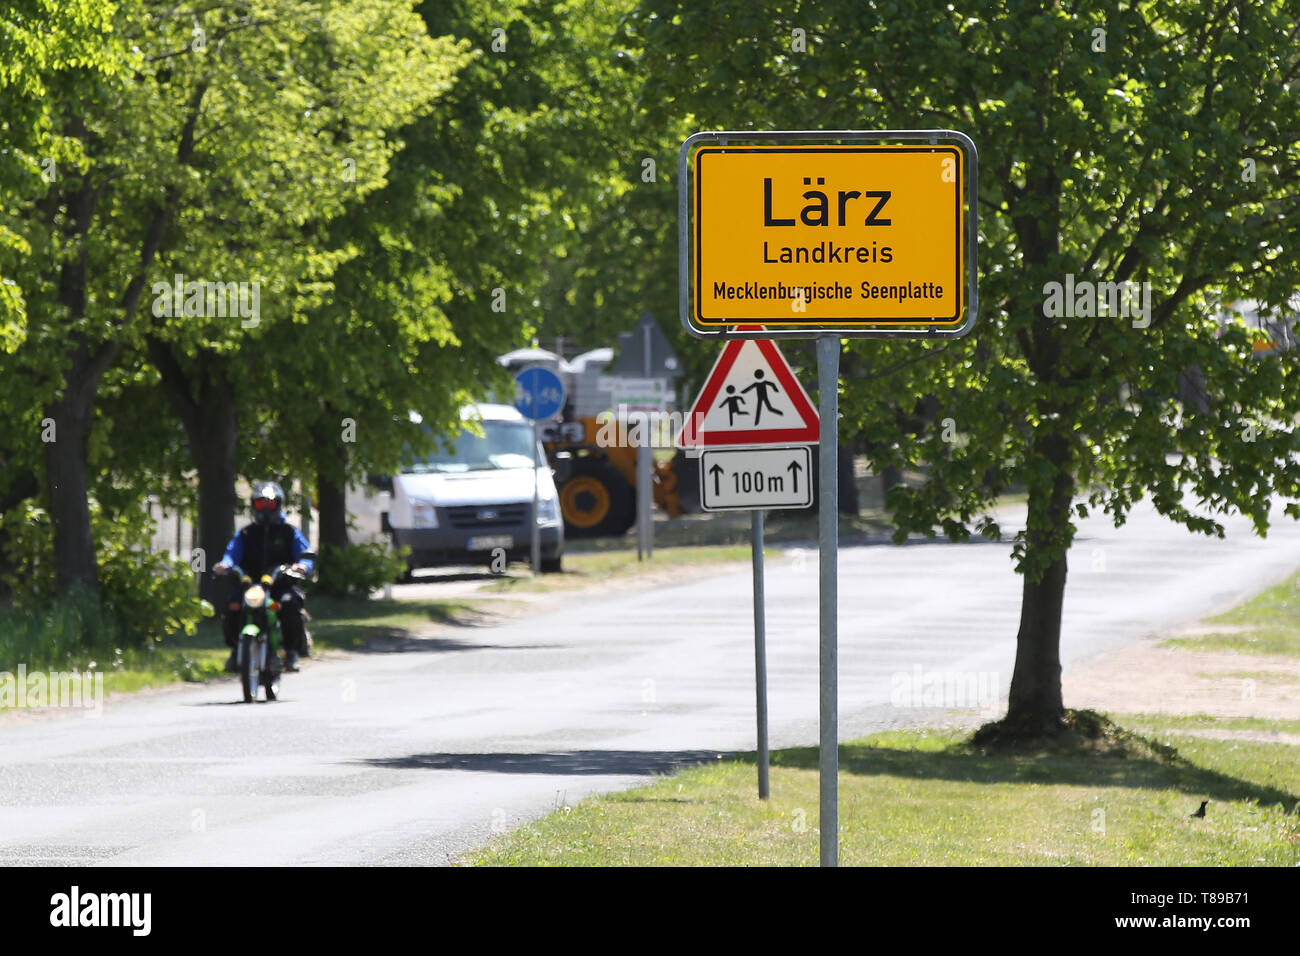 Larz, Germany  12th May, 2019  The place name sign of Lärz is to be